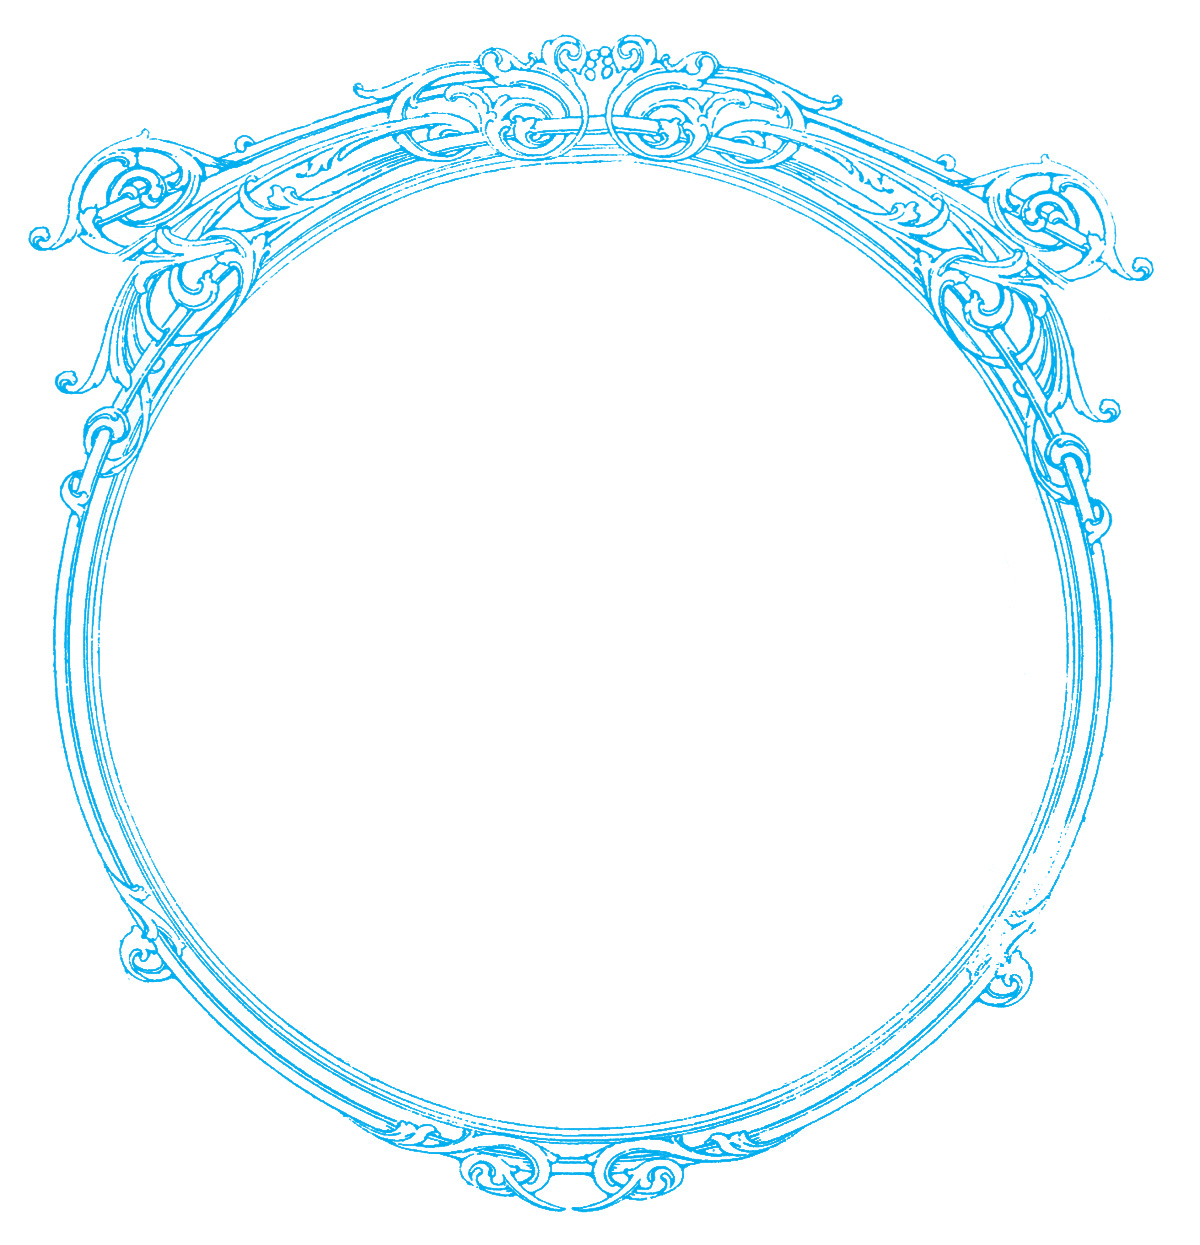 vintage images round ornate frames the graphics fairy under the sea clip art black white under the sea clip art black and white